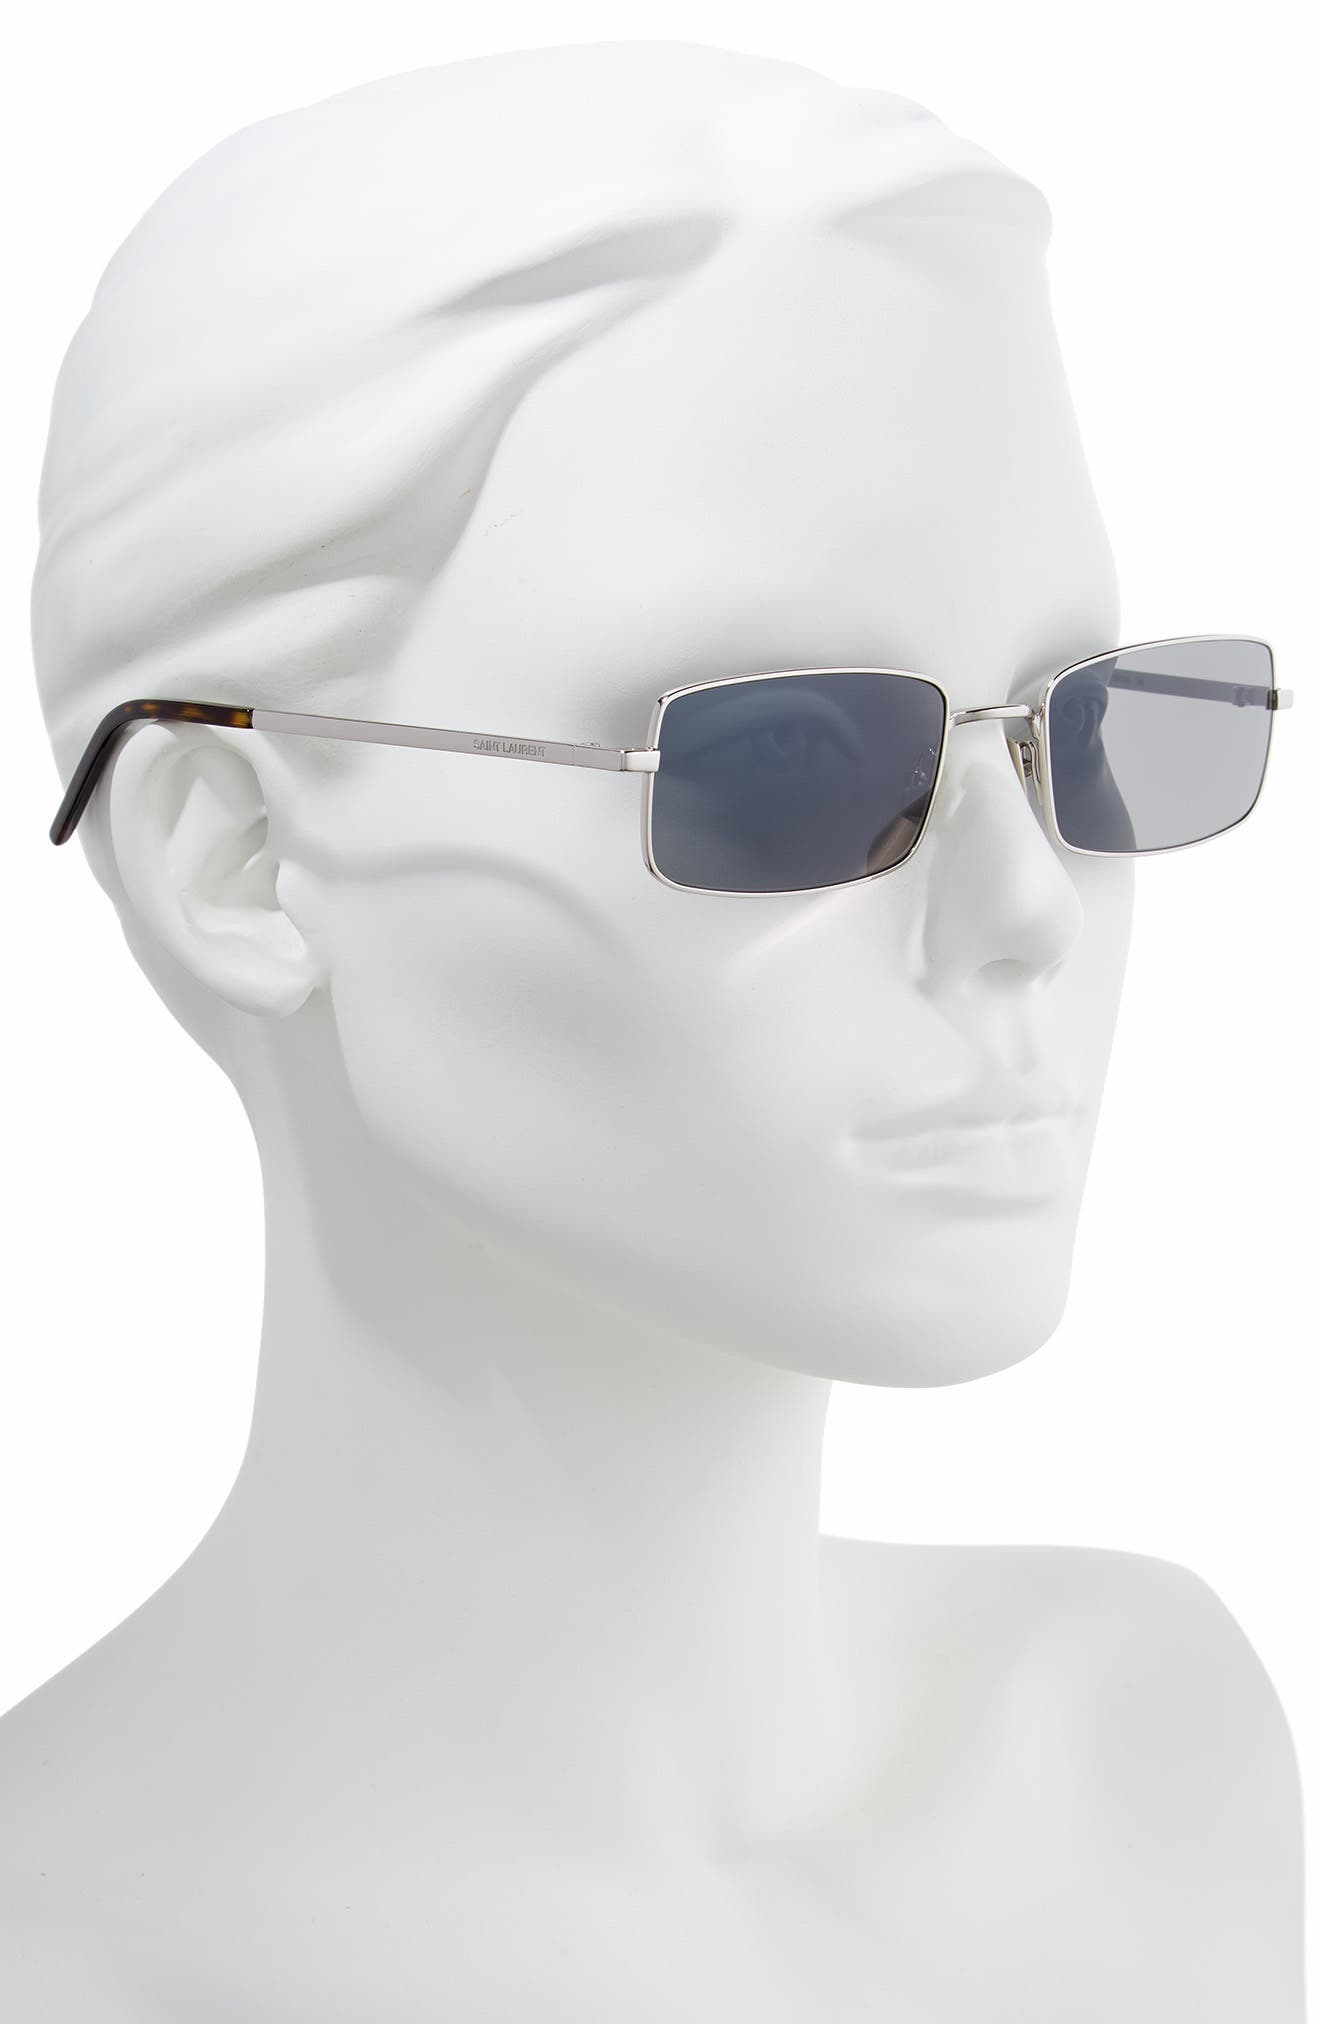 56mm Rectangle Sunglasses,                             Alternate thumbnail 2, color,                             SILVER/ GREY